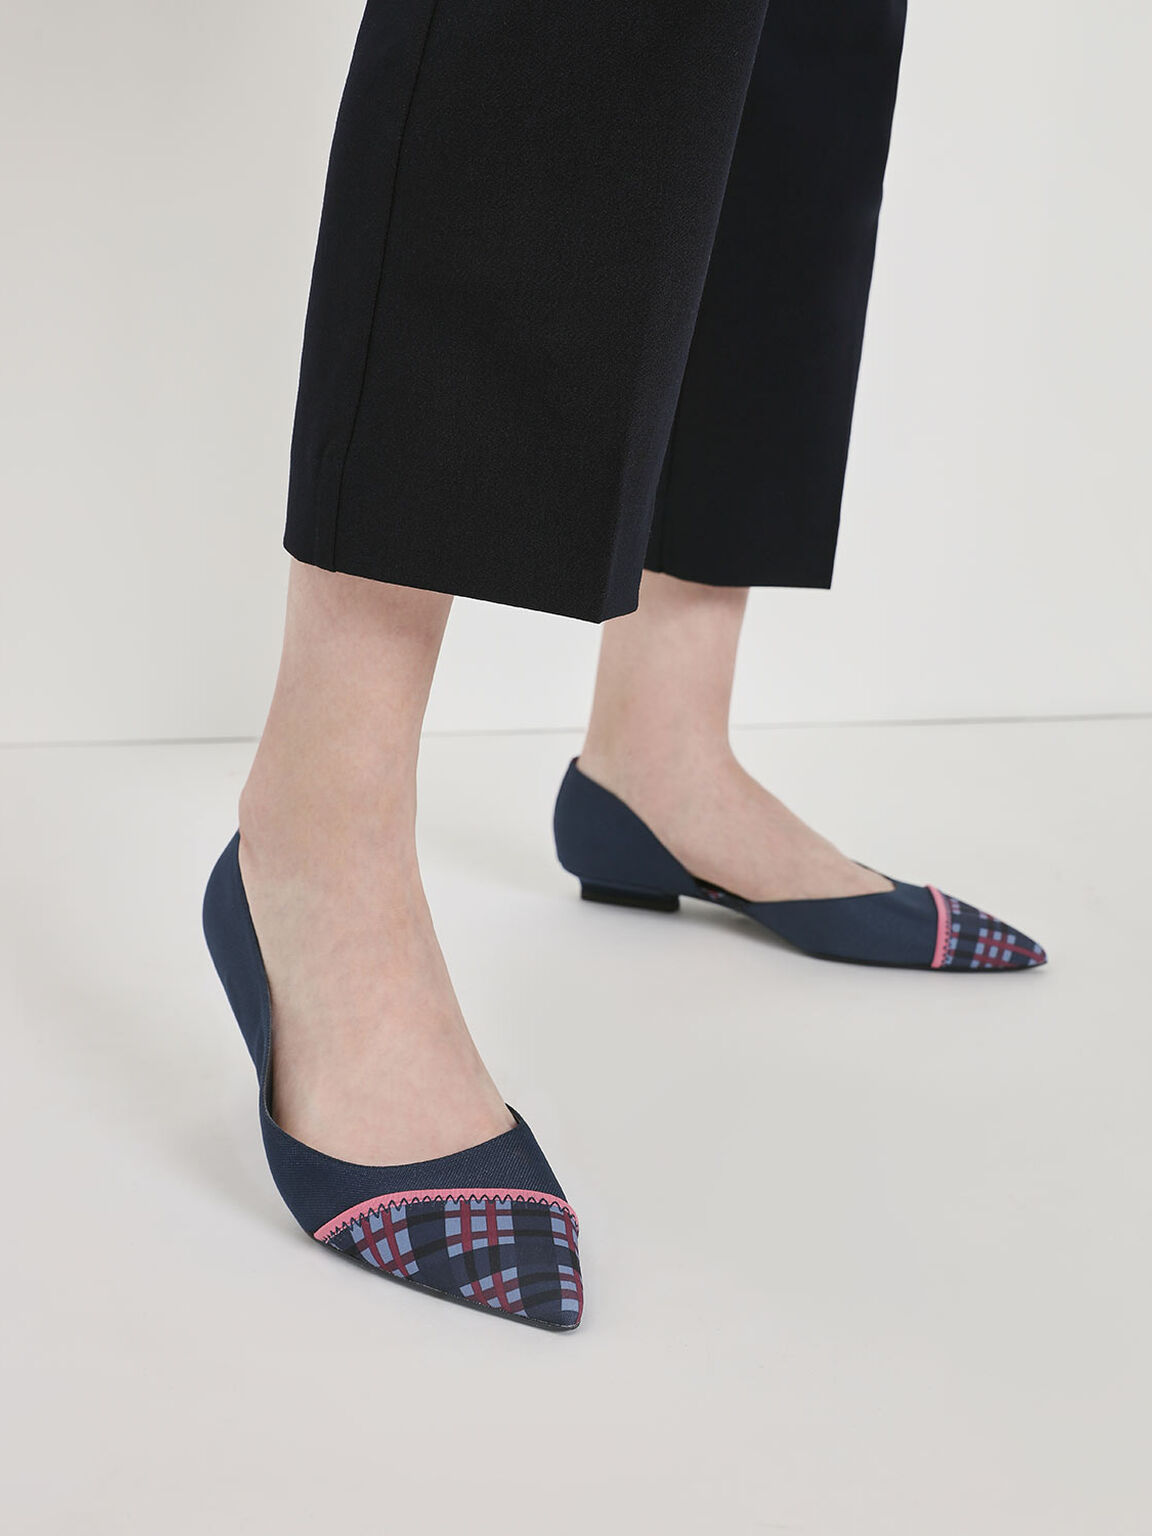 Asymmetrical Check Print Ballerinas, Blue, hi-res